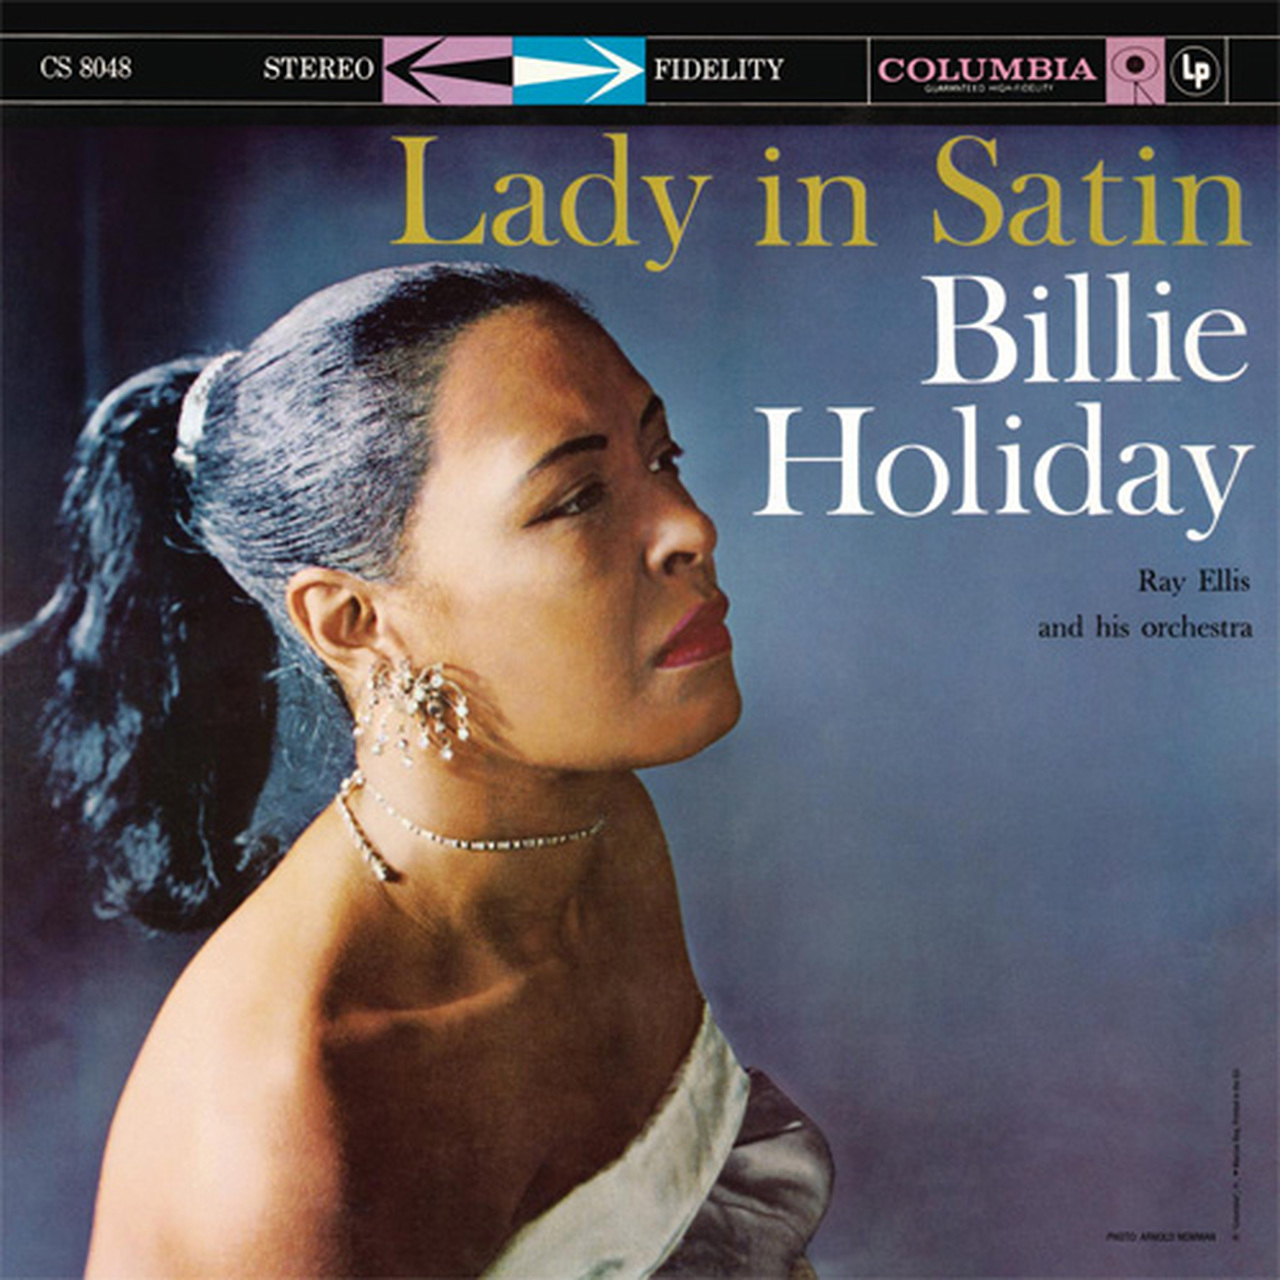 Billie Holiday Lady In Satin Import LP